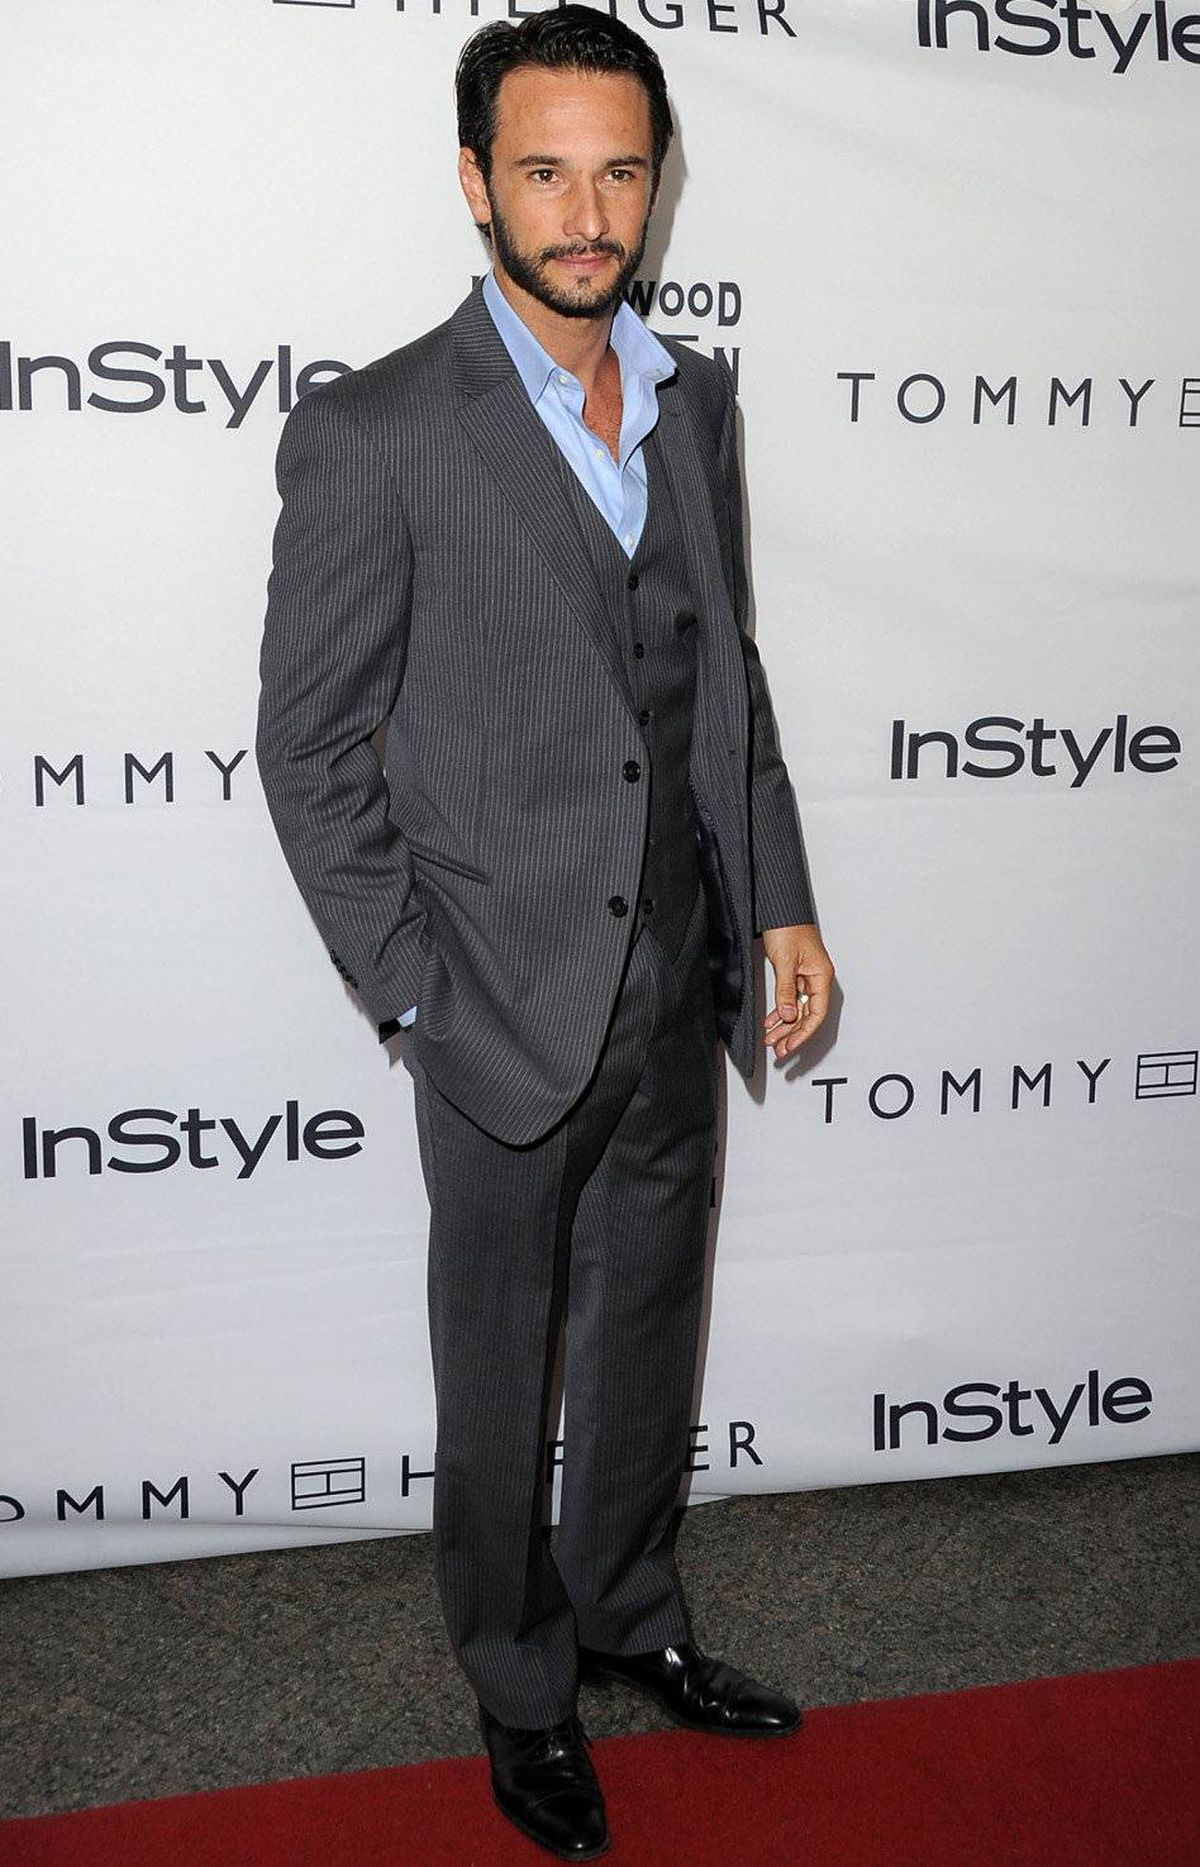 Actor Rodrigo Santoro arrives at the InStyle And The Hollywood Foreign Press Association's Annual Event during the 2011 Toronto International Film Festivalat Windsor Arms Hotel on September 13, 2011 in Toronto.